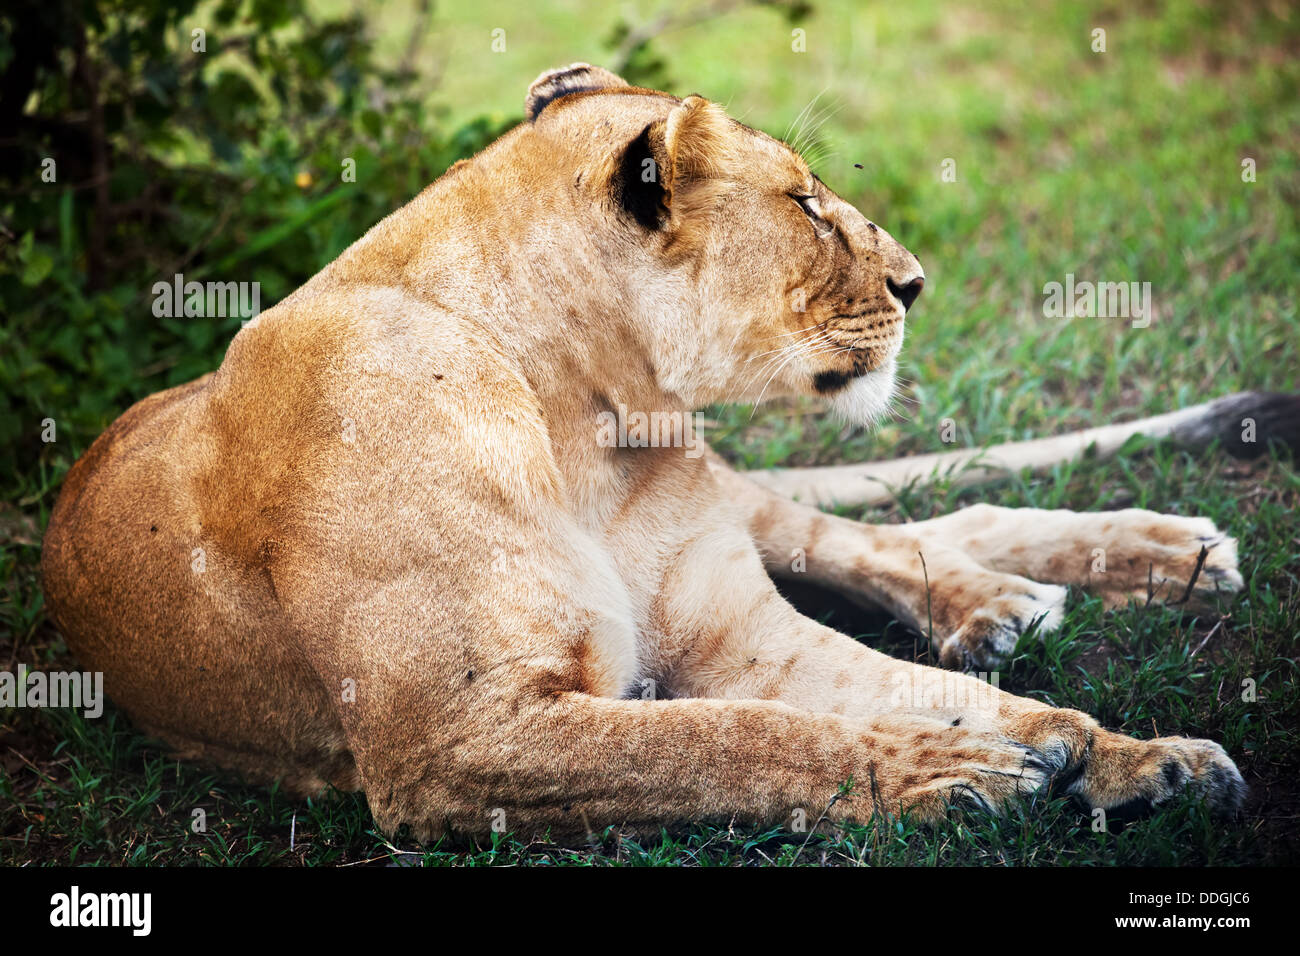 Female lion lying in the Serengeti National Park in Tanzania, Africa - Stock Image